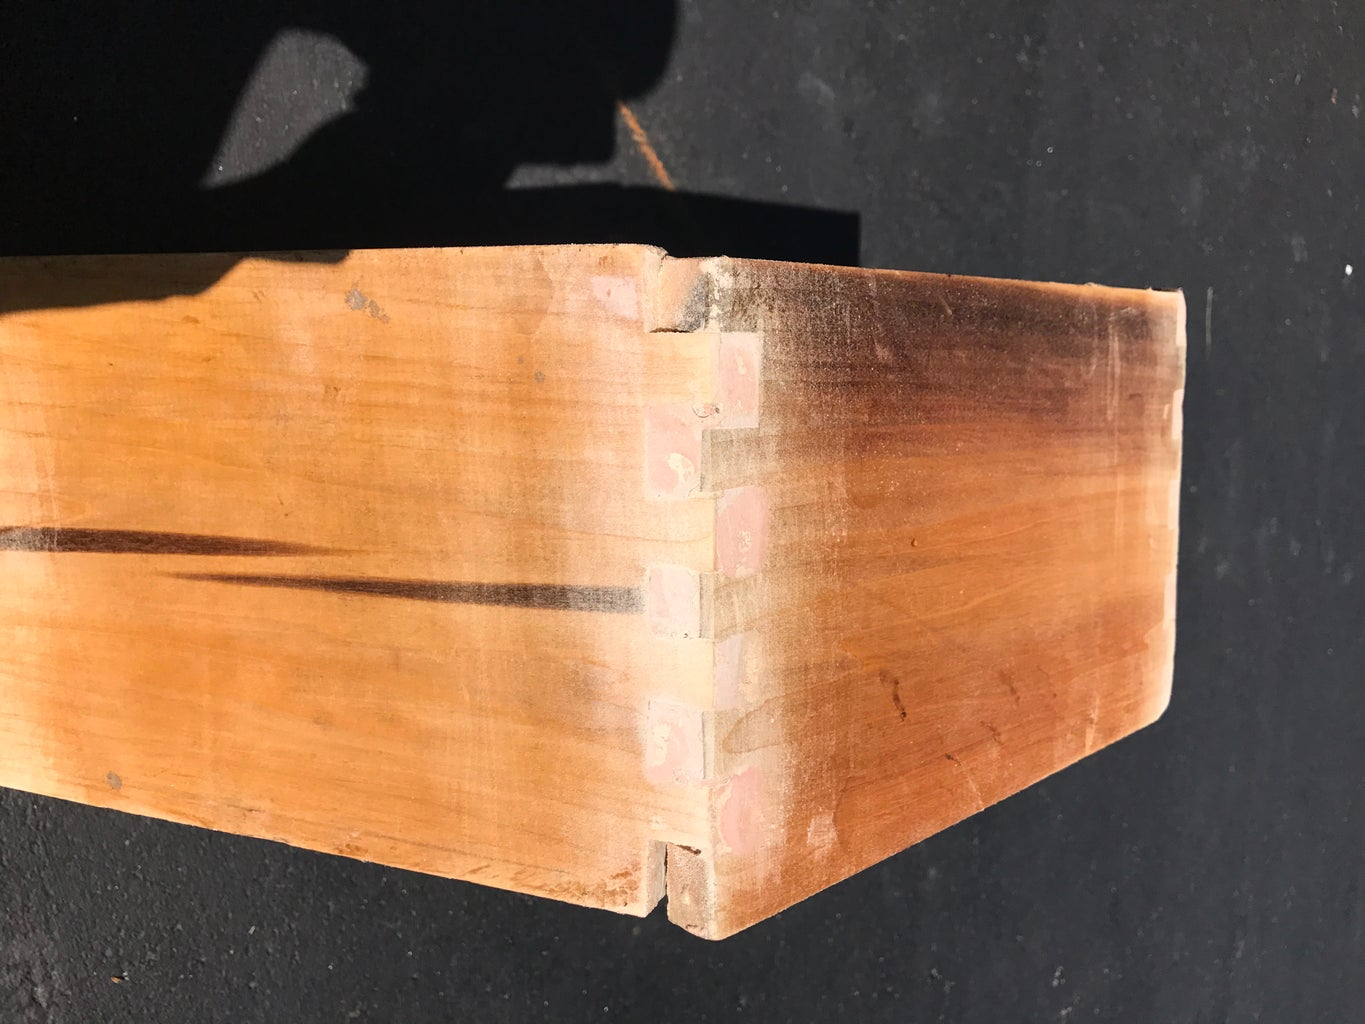 Gluing, Filler, and Stain